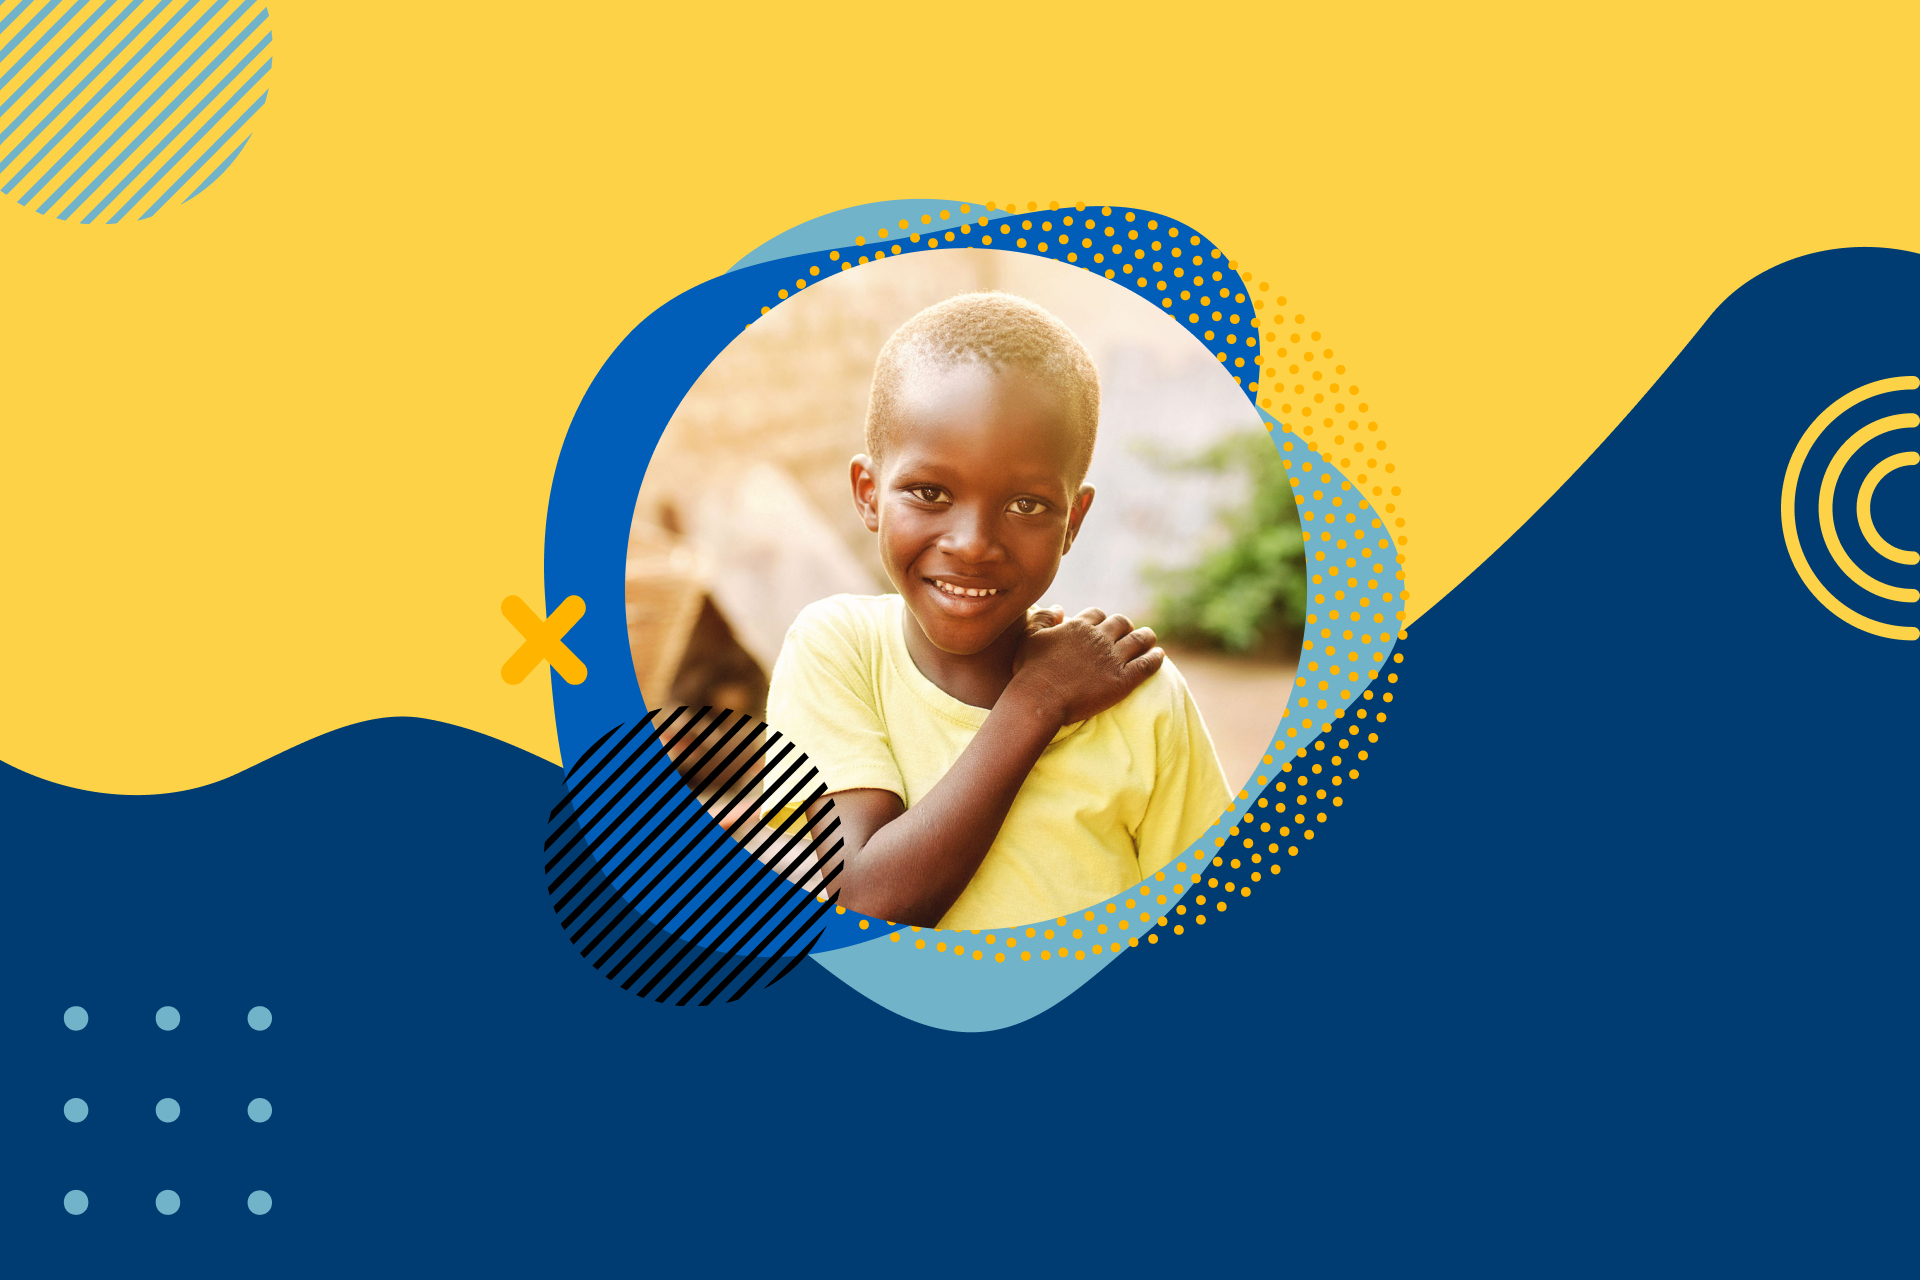 A yellow and blue graphic background with a small image of an African child wearing a yellow shirt in the centre.